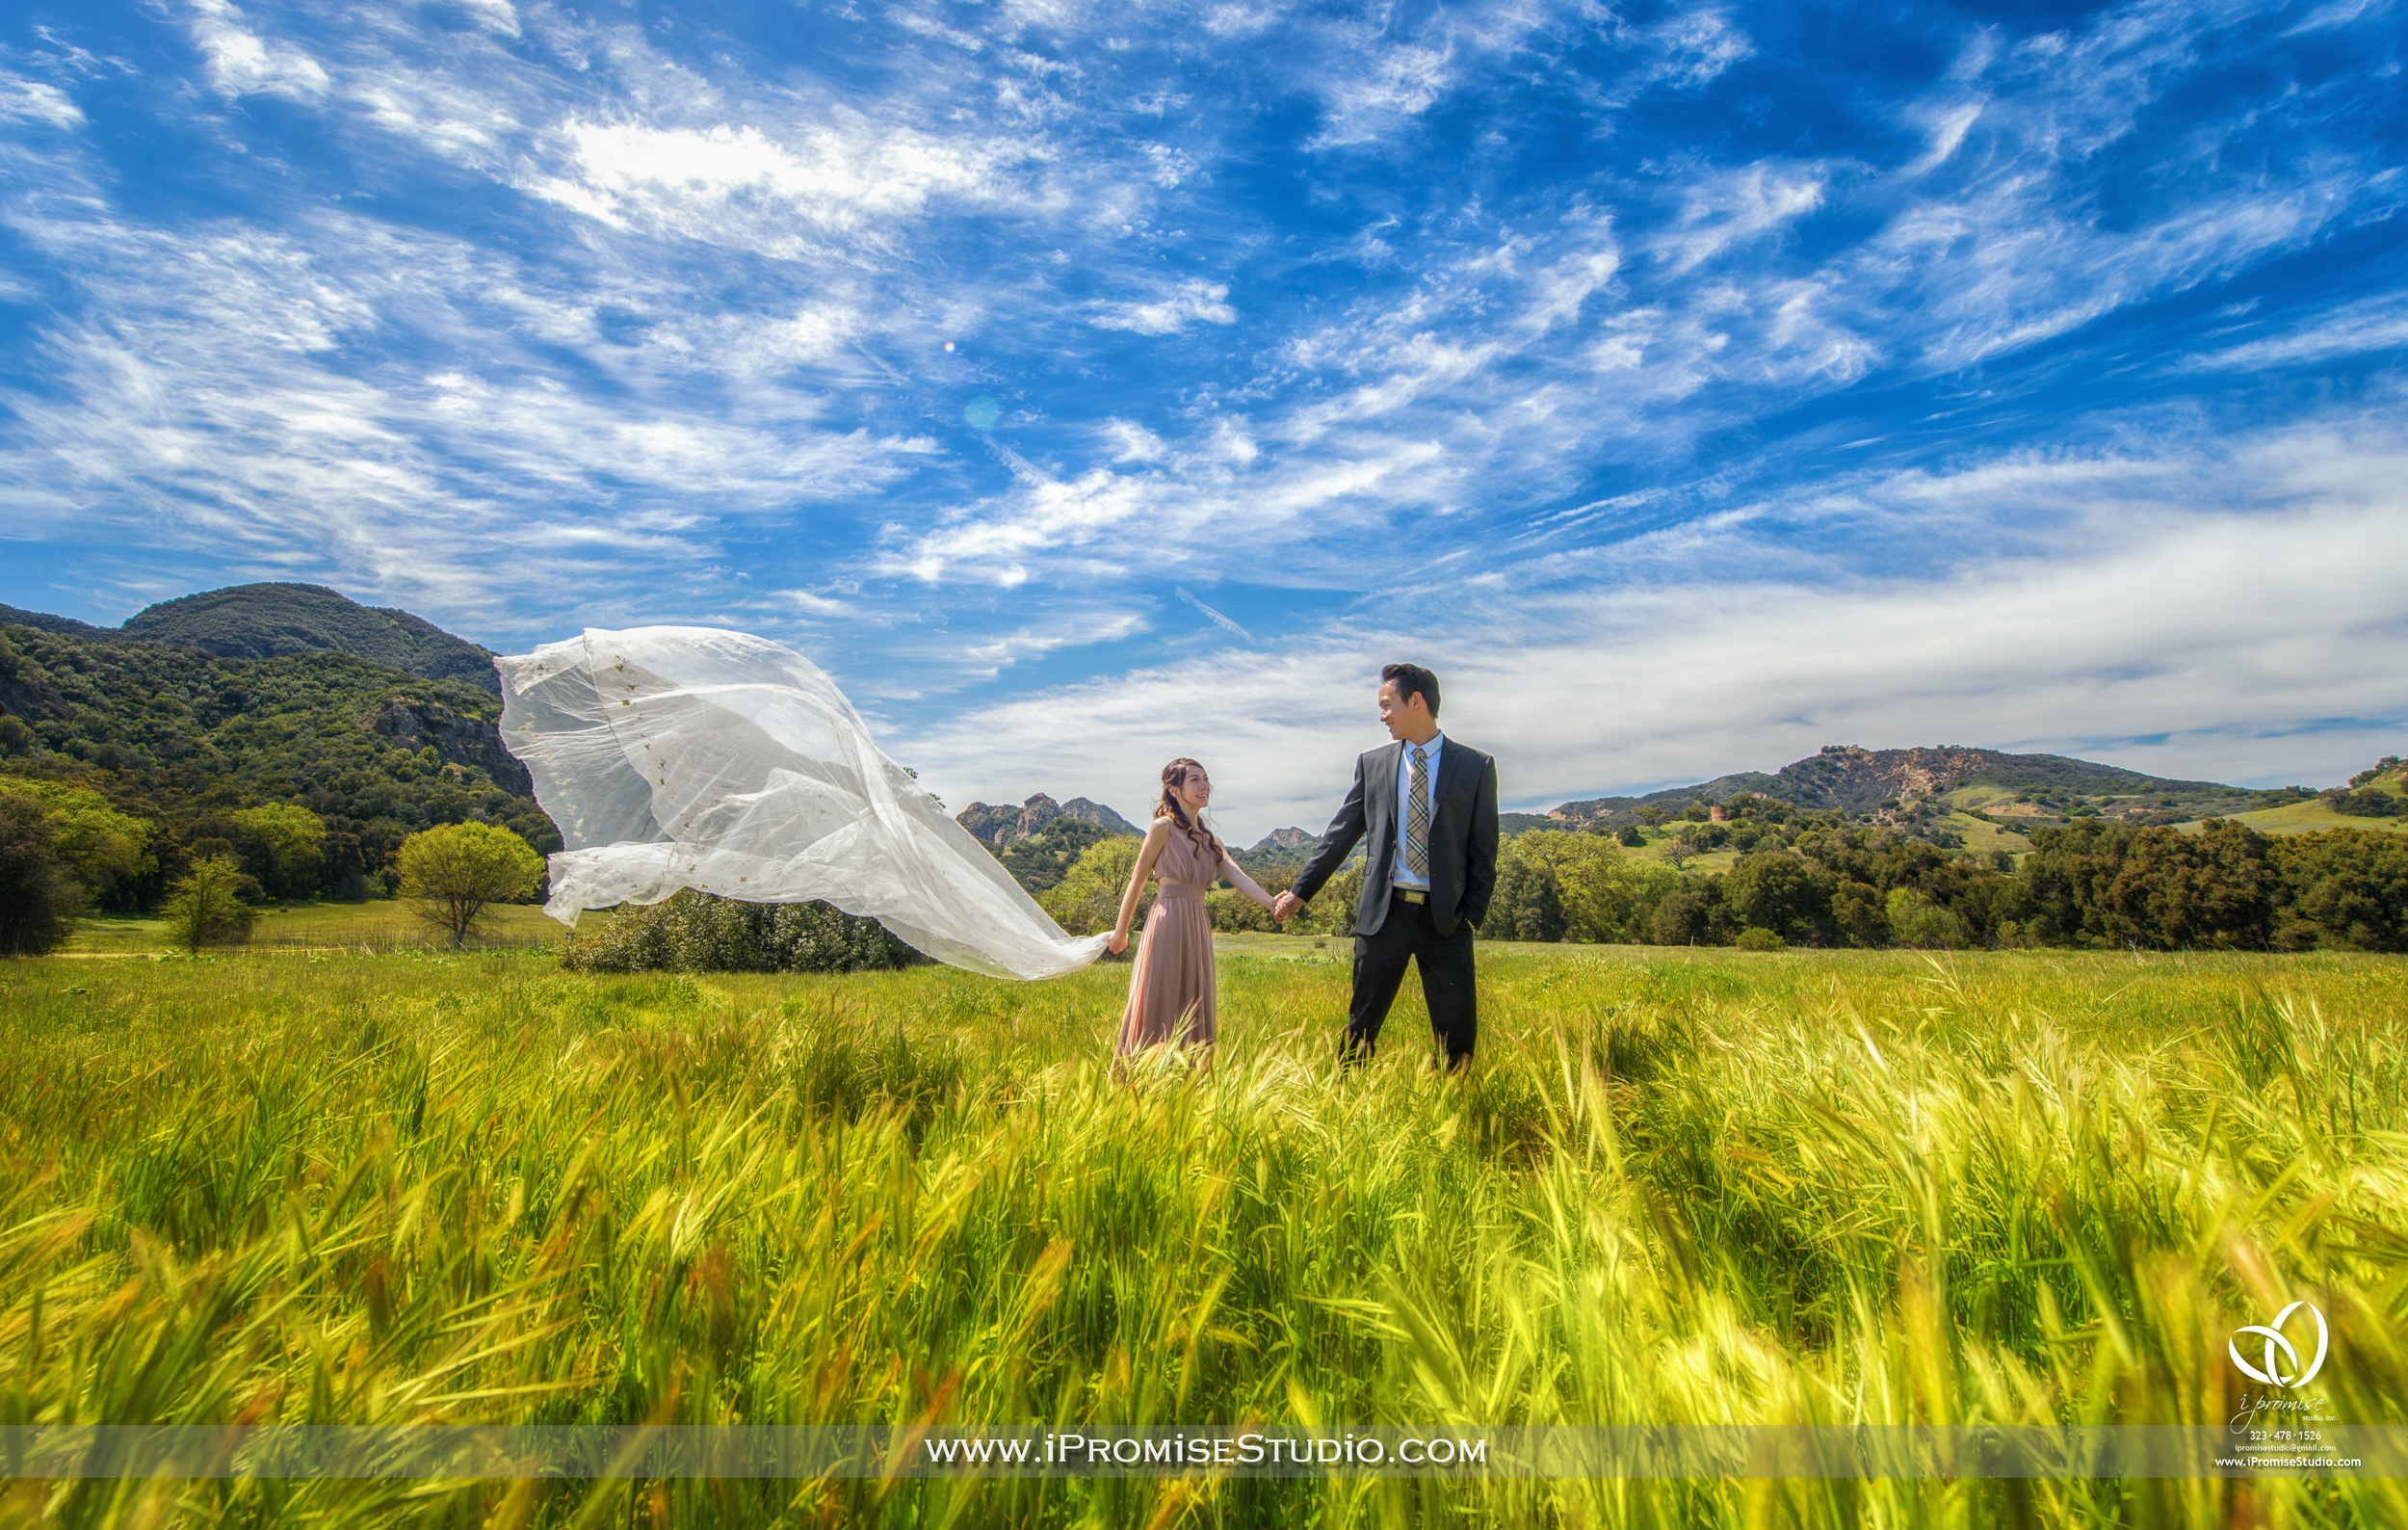 Malibu National Park Canyon Grassland Jungle Forest - Engagement Wedding 02.JPG